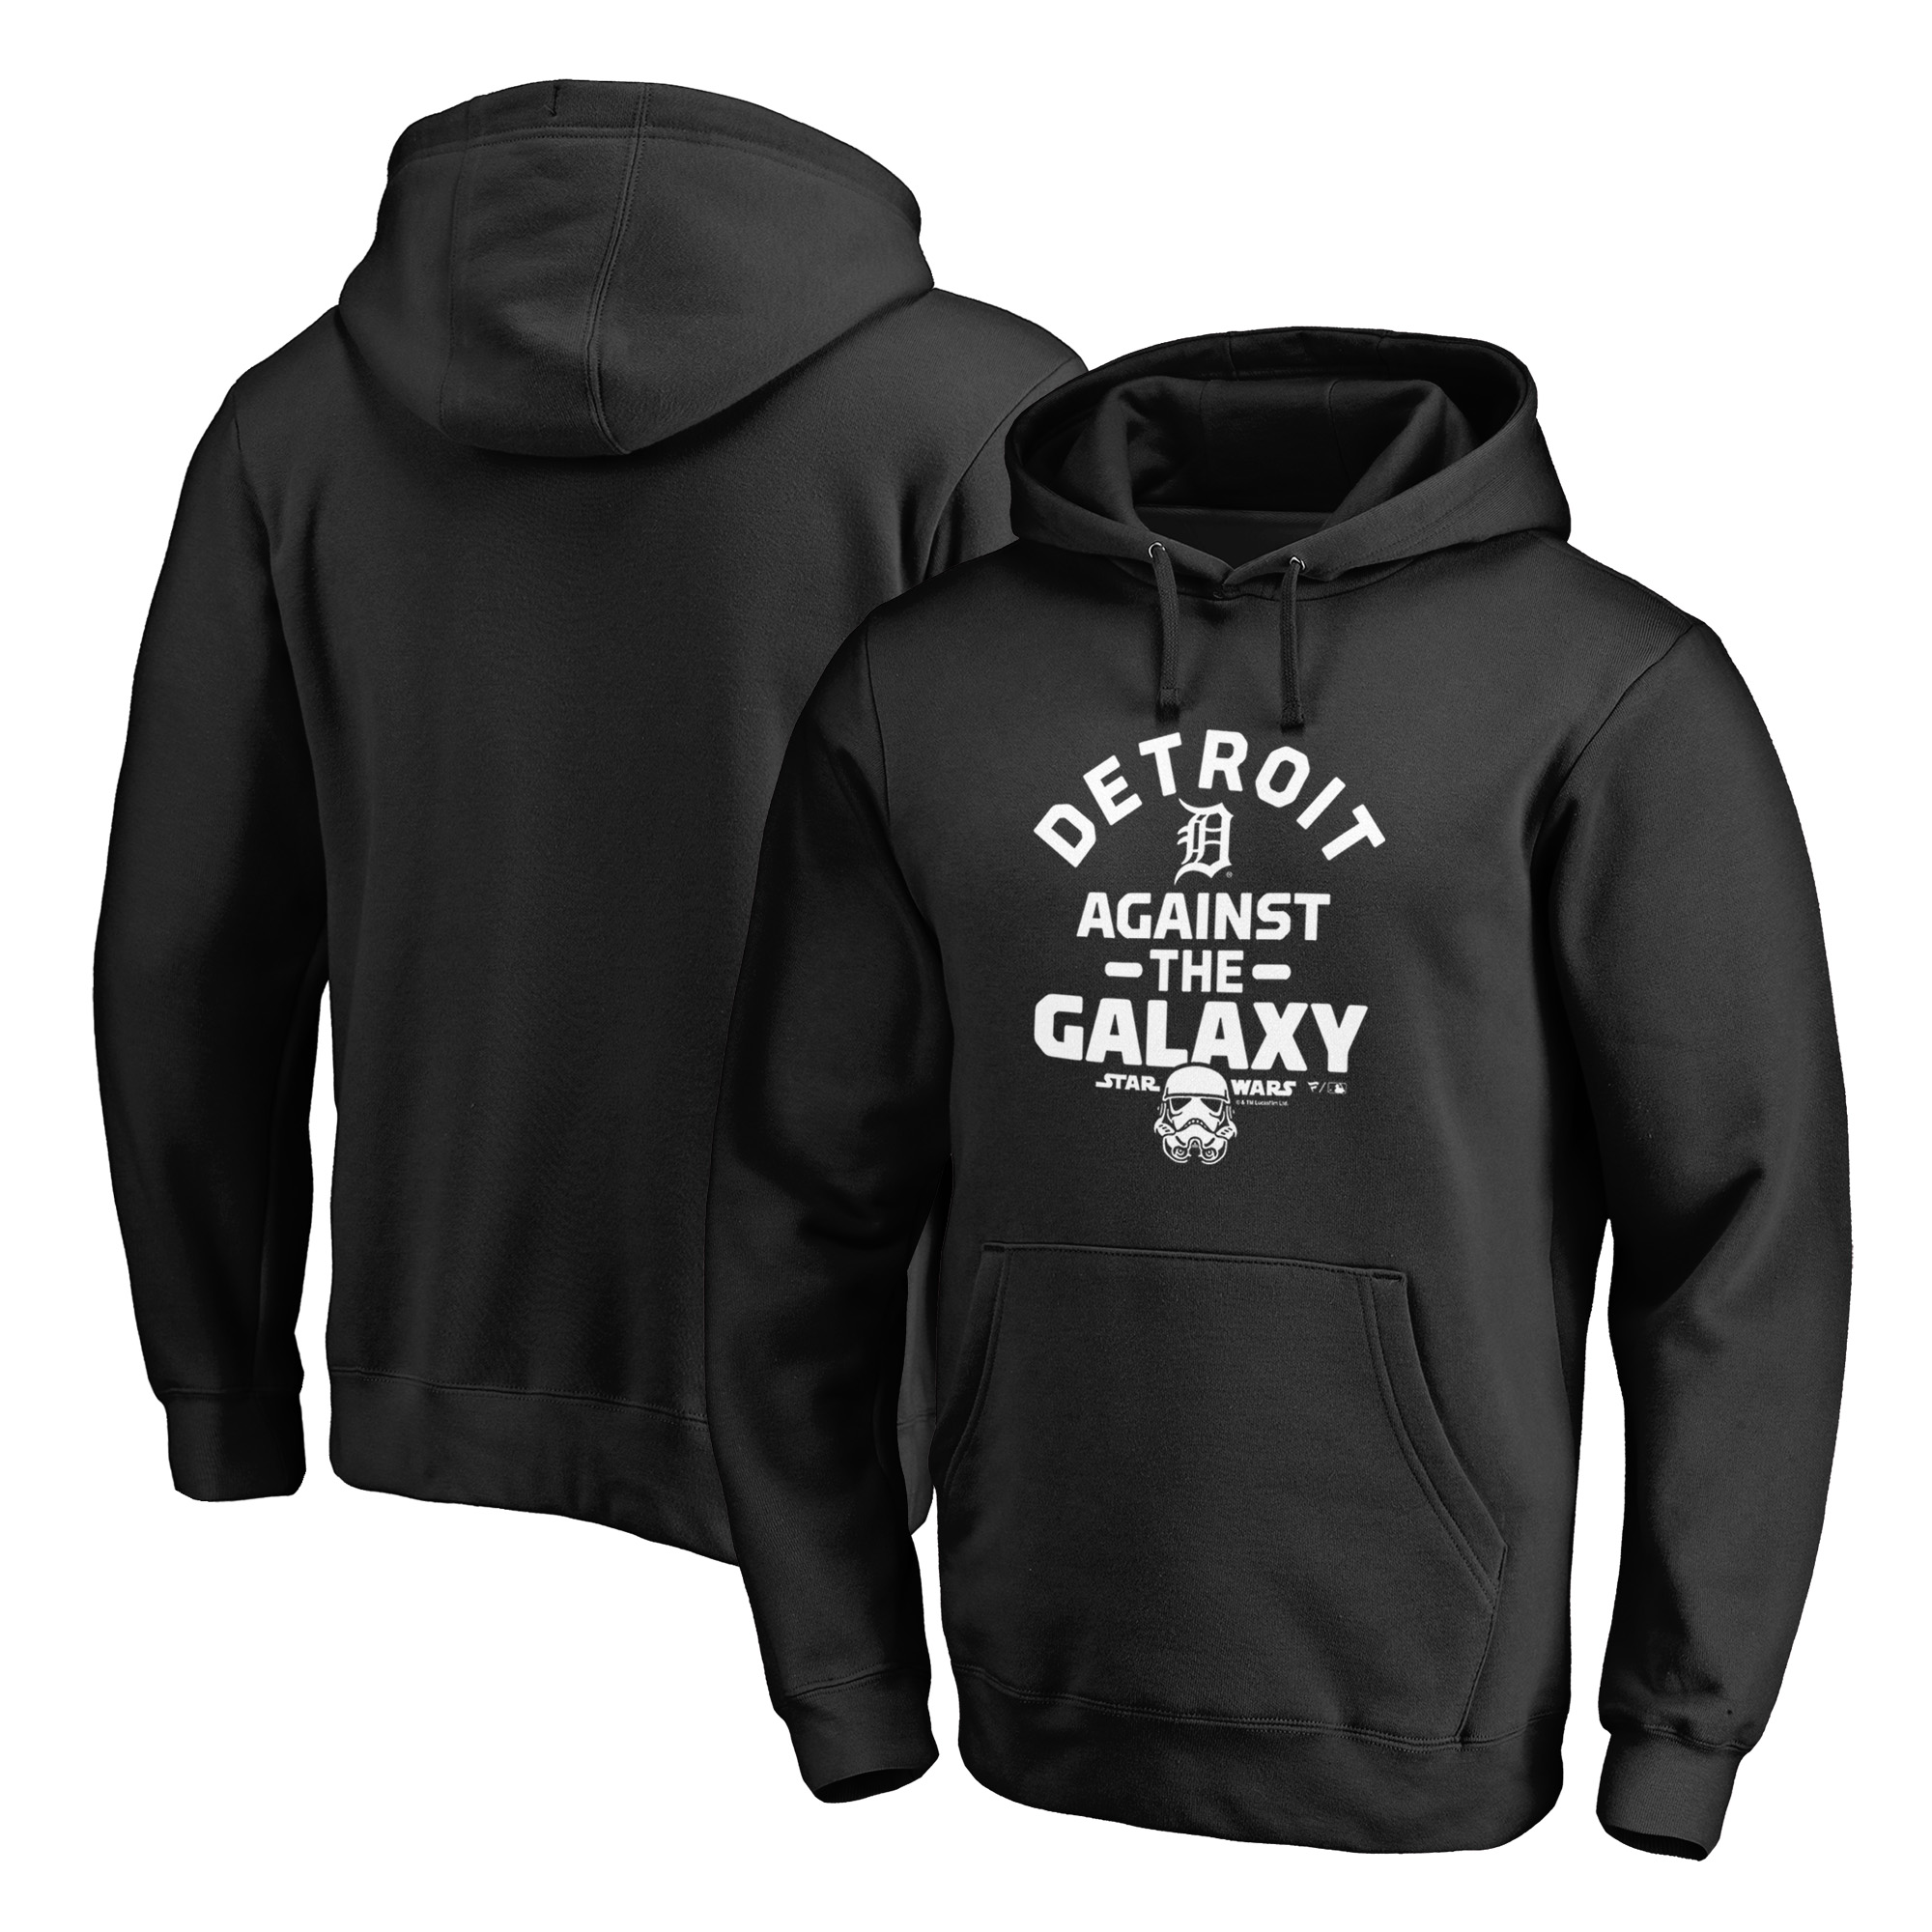 Detroit Tigers Fanatics Branded MLB Star Wars Against The Galaxy Pullover Hoodie - Black